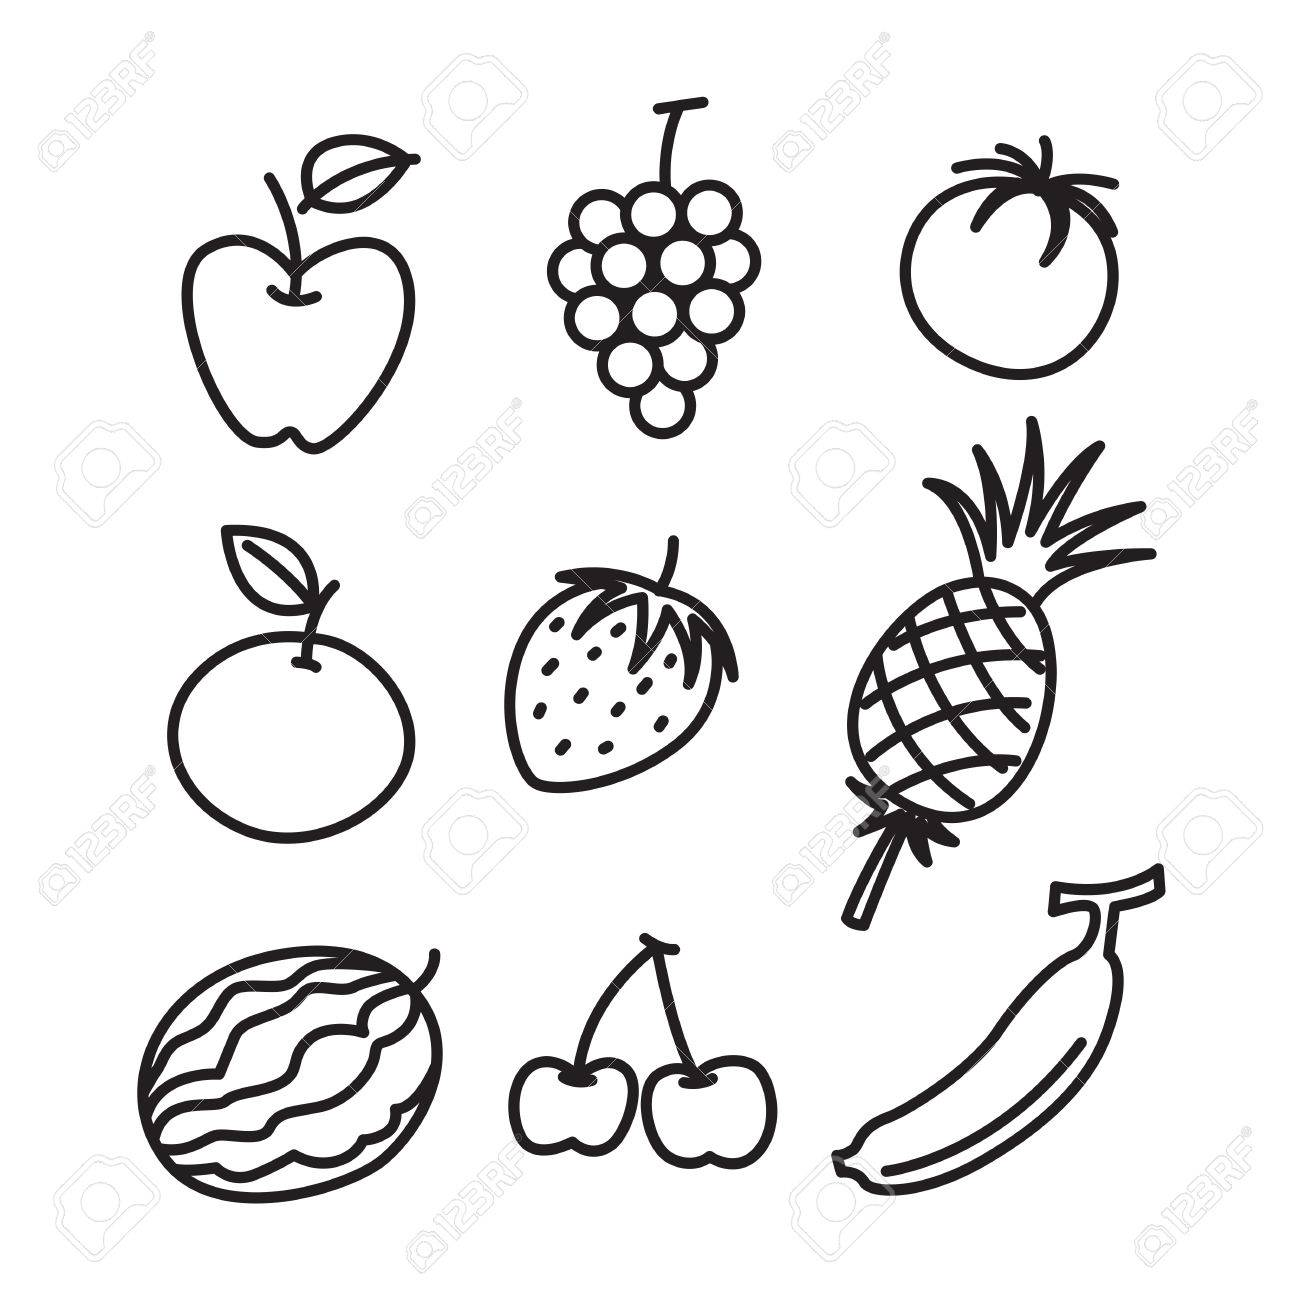 How To Draw Fruits And Veggies Coloring Pages Learn Vegetables For Kids